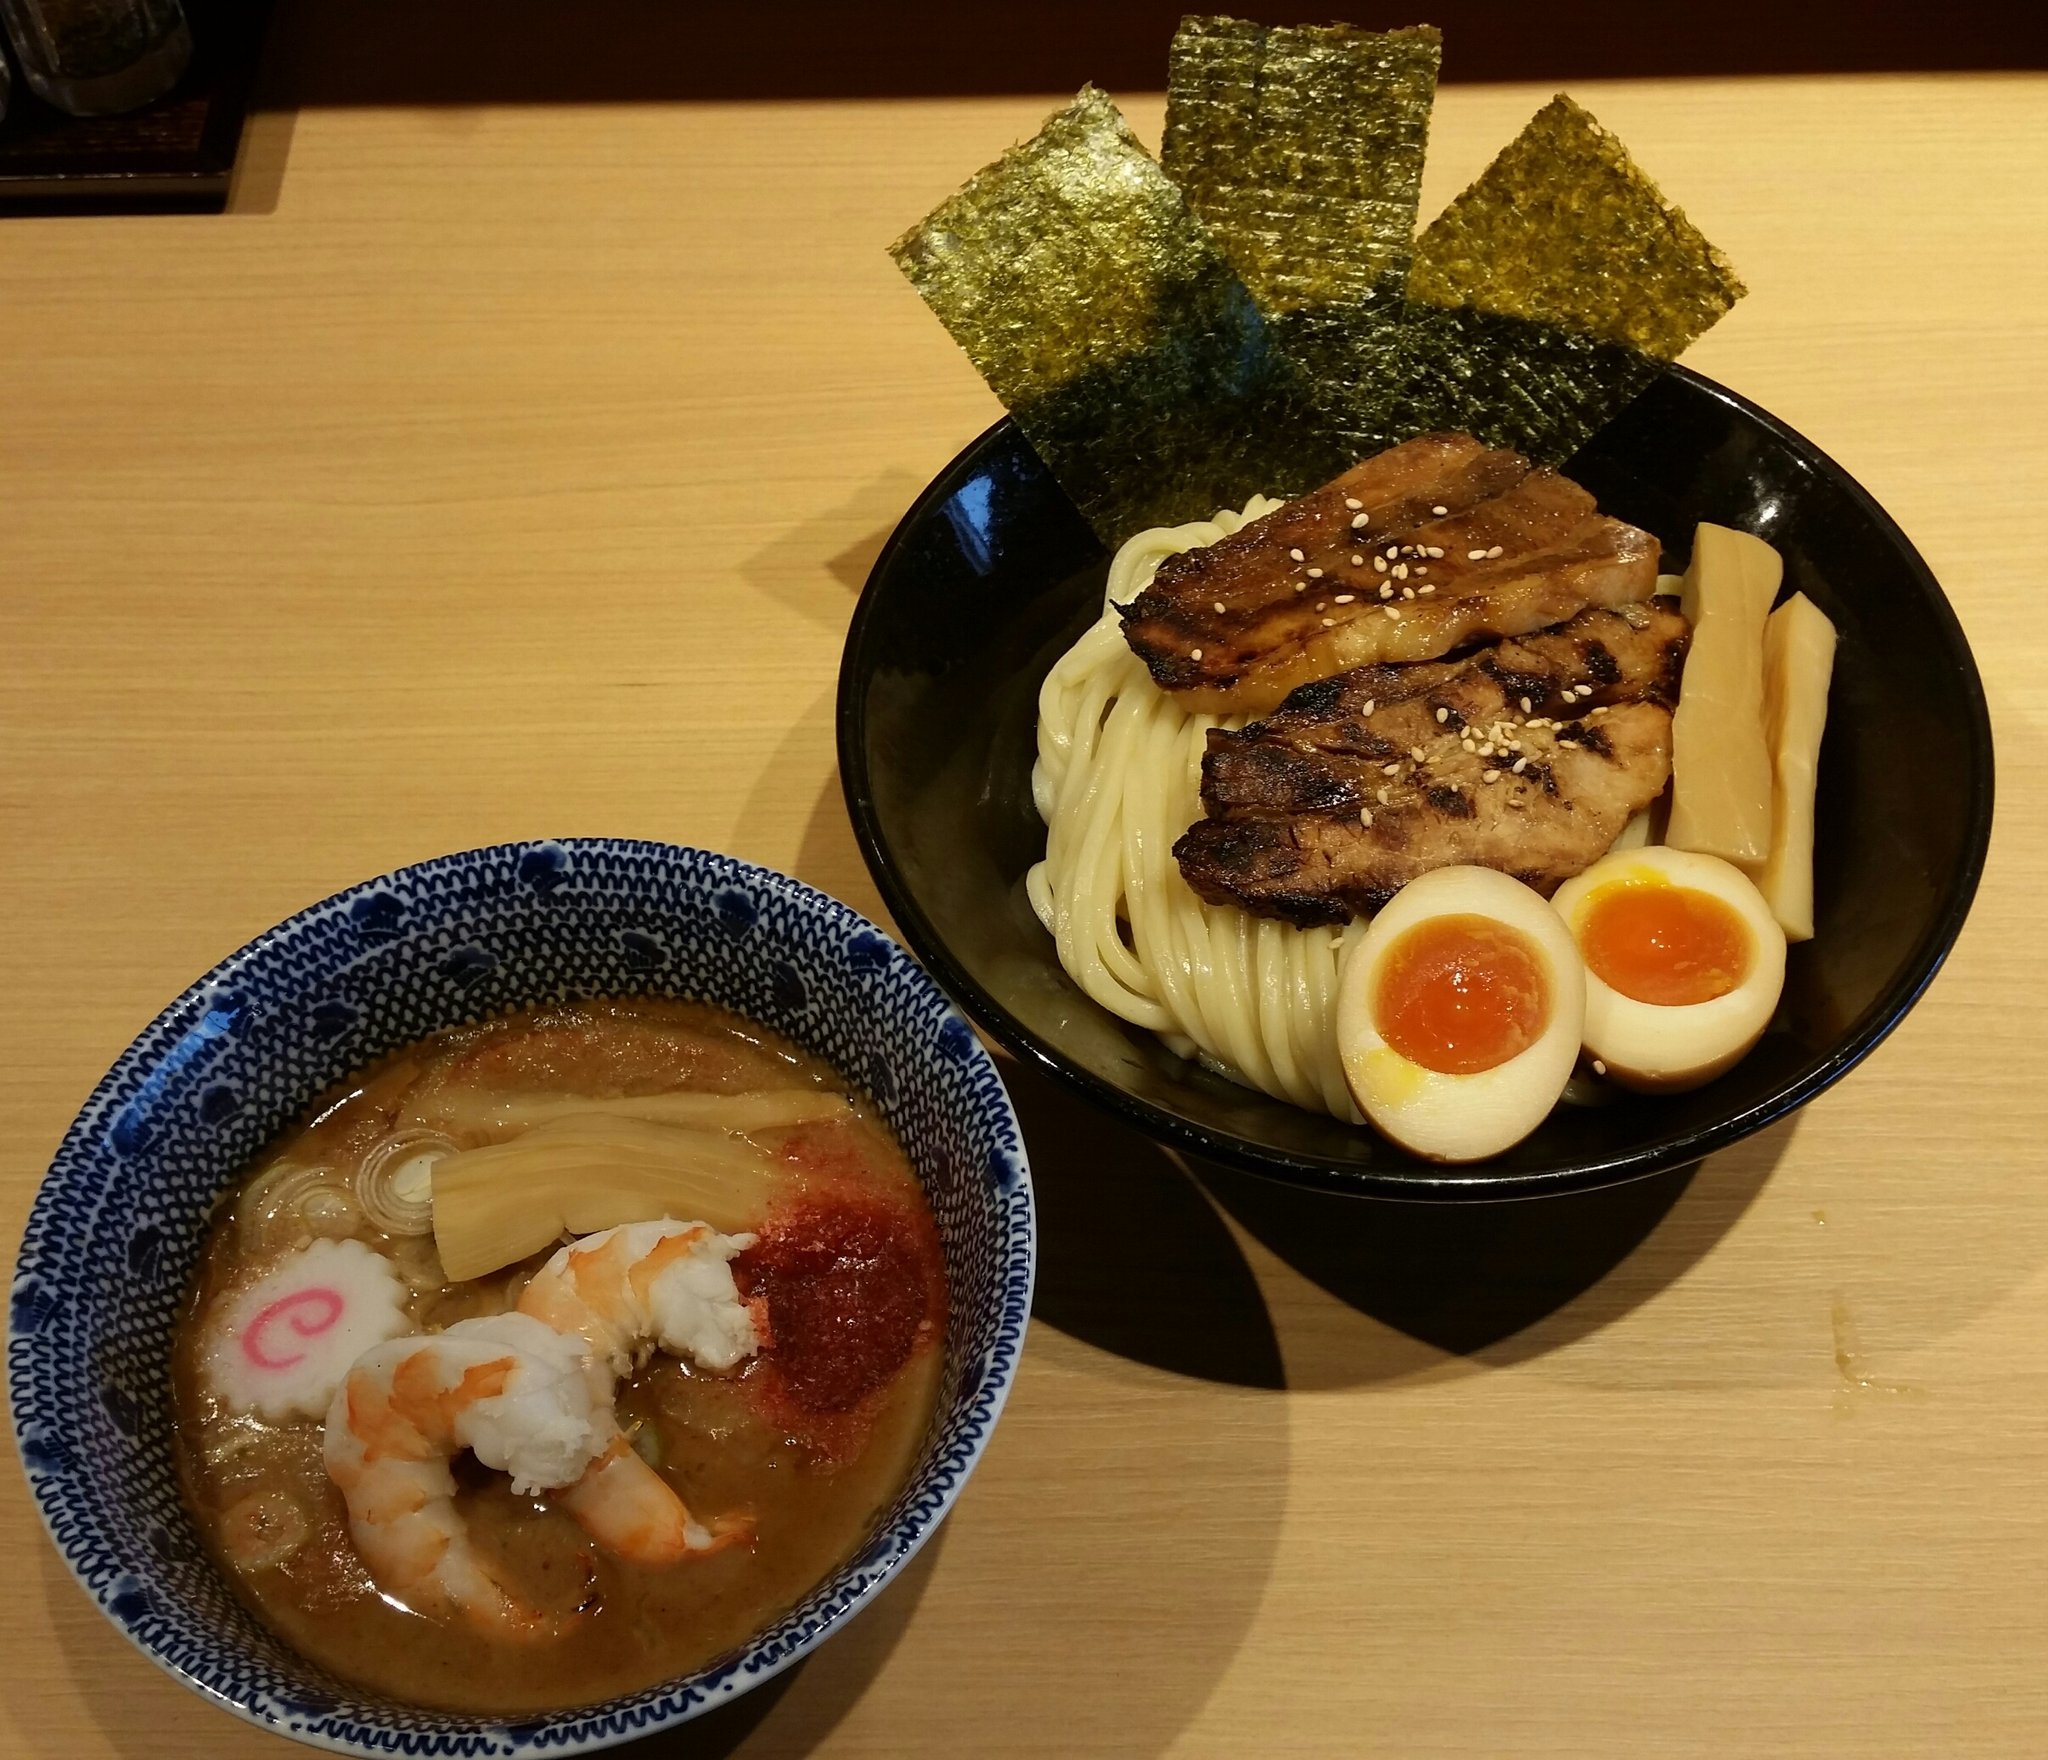 Wanted! Hall staff and kitchen staff for ramen store in【Odaiba】